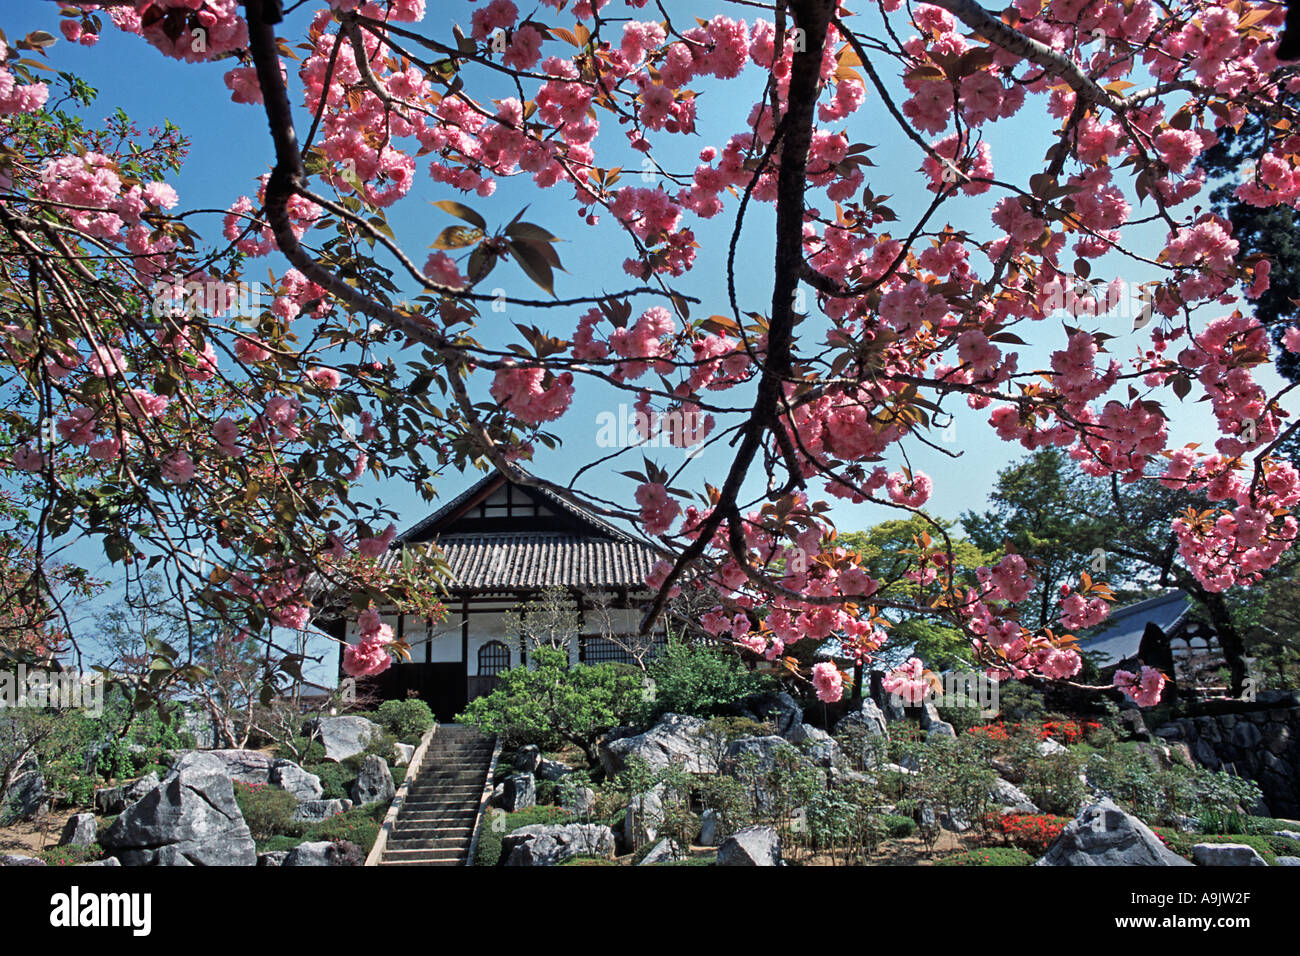 Cherry blossom in the gardens of Taima temple Nara prefecture Japan - Stock Image